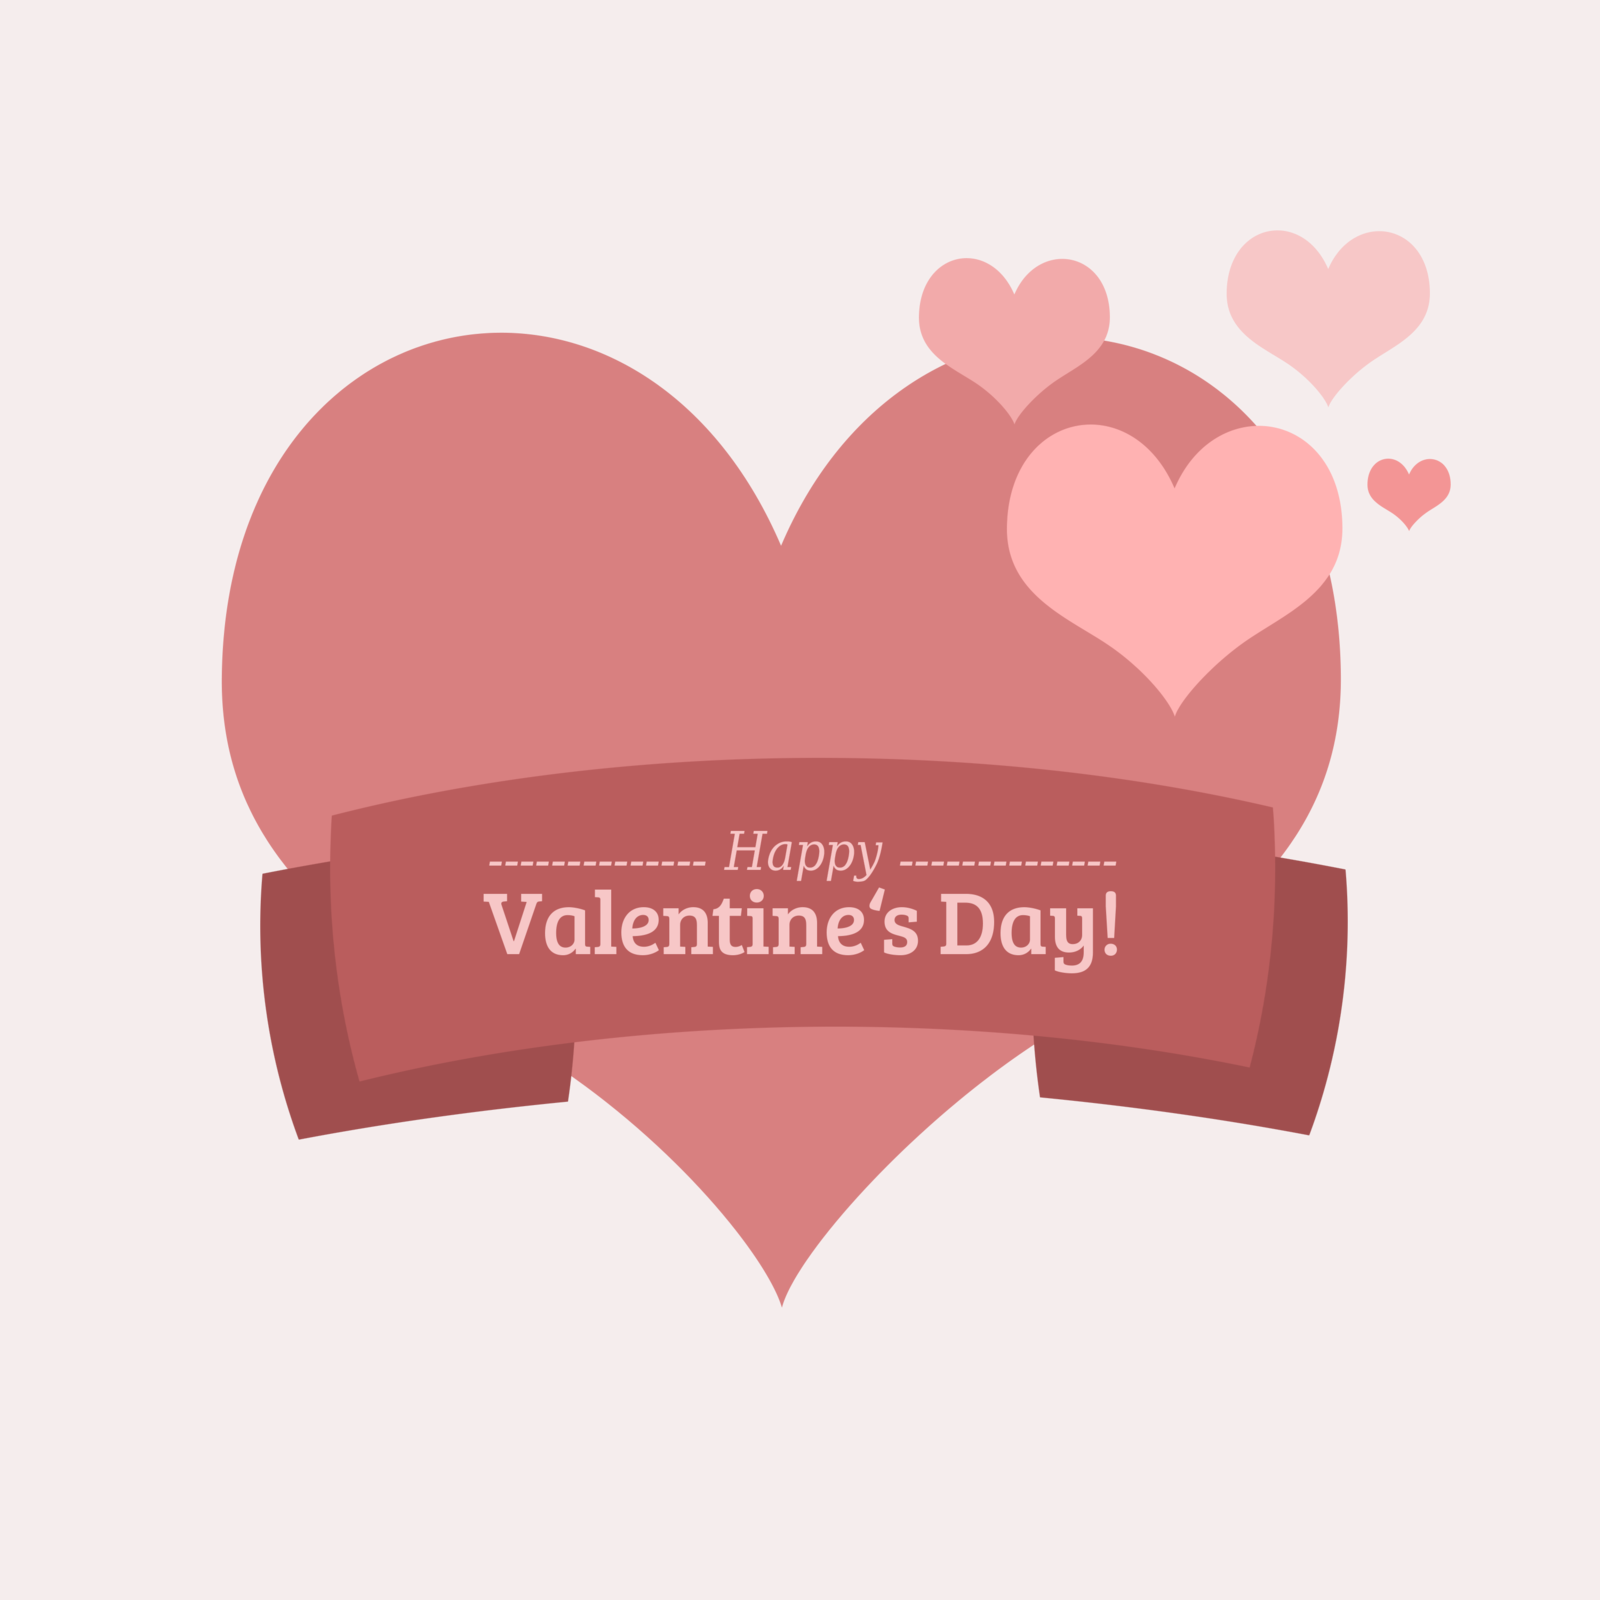 Sweet ,heart,clipart,valentine,day,saint,valentin,png,cœur,amour,love,red,pink,gold,cupid,cupidon,cluster,png,diamond,rainbow,color,border,banner,